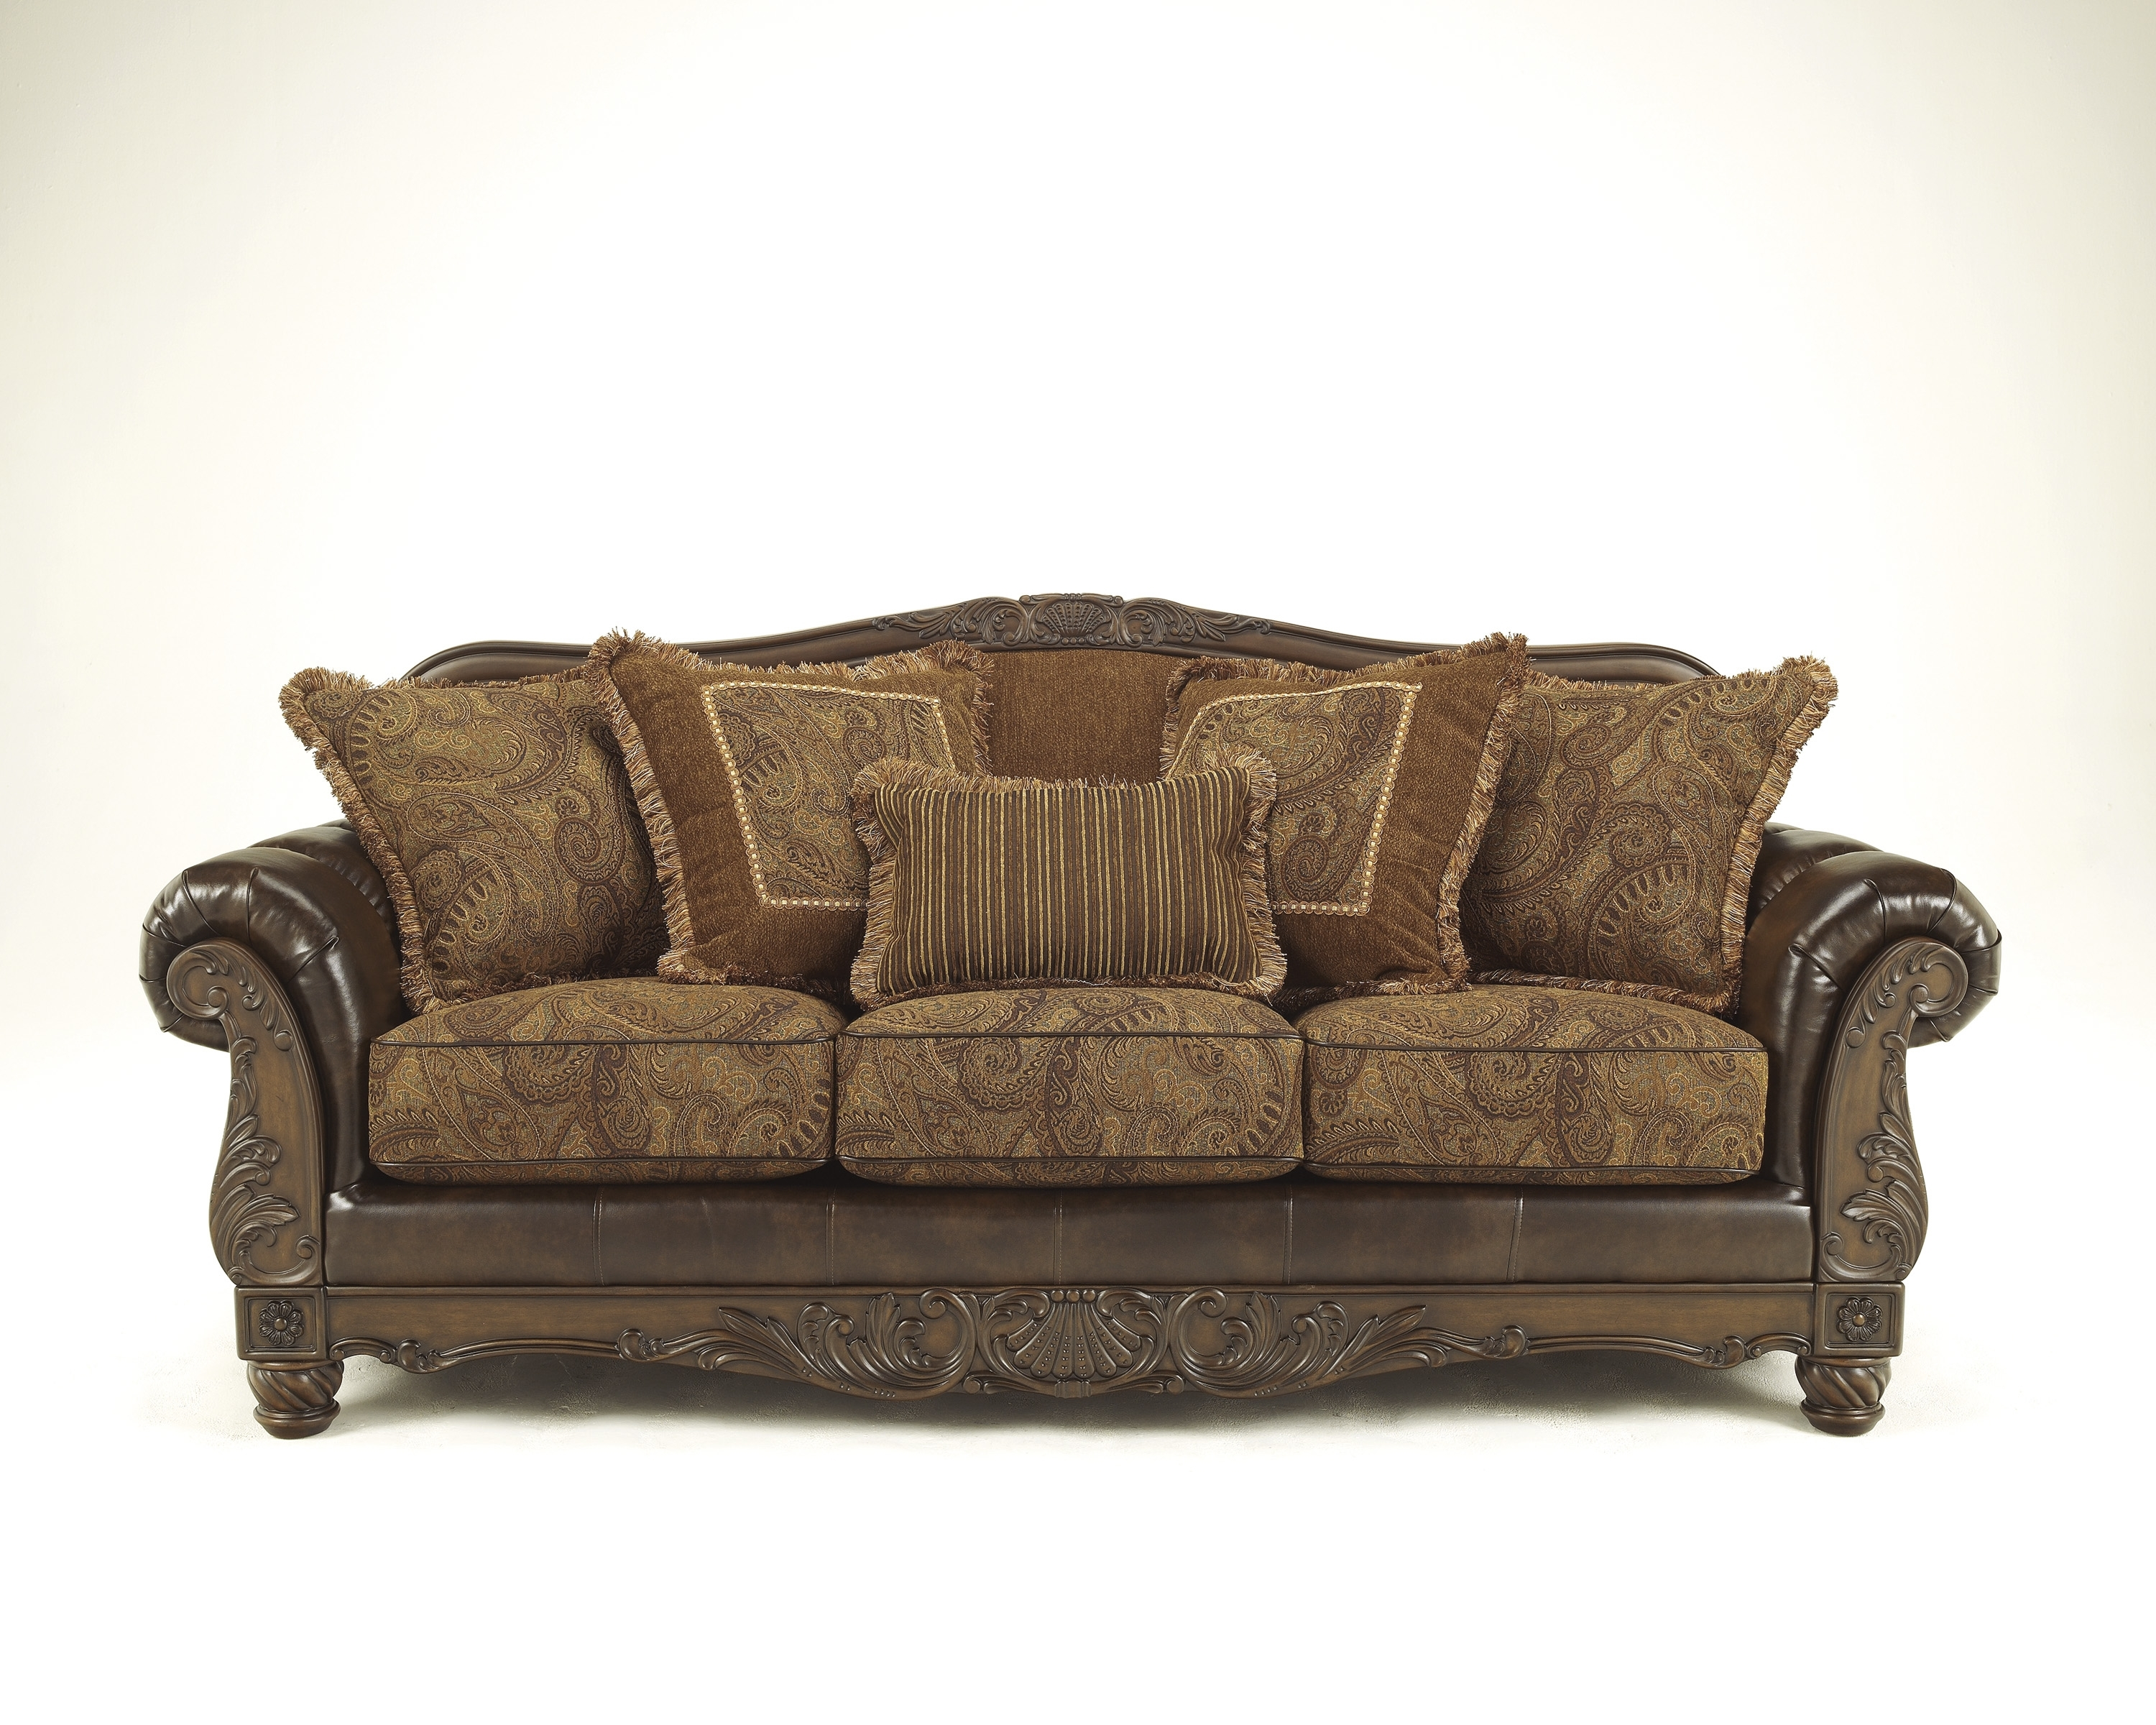 Ashley Fresco Antique Sofa And Love! – Dream Rooms Furniture Intended For Antique Sofas (View 7 of 10)